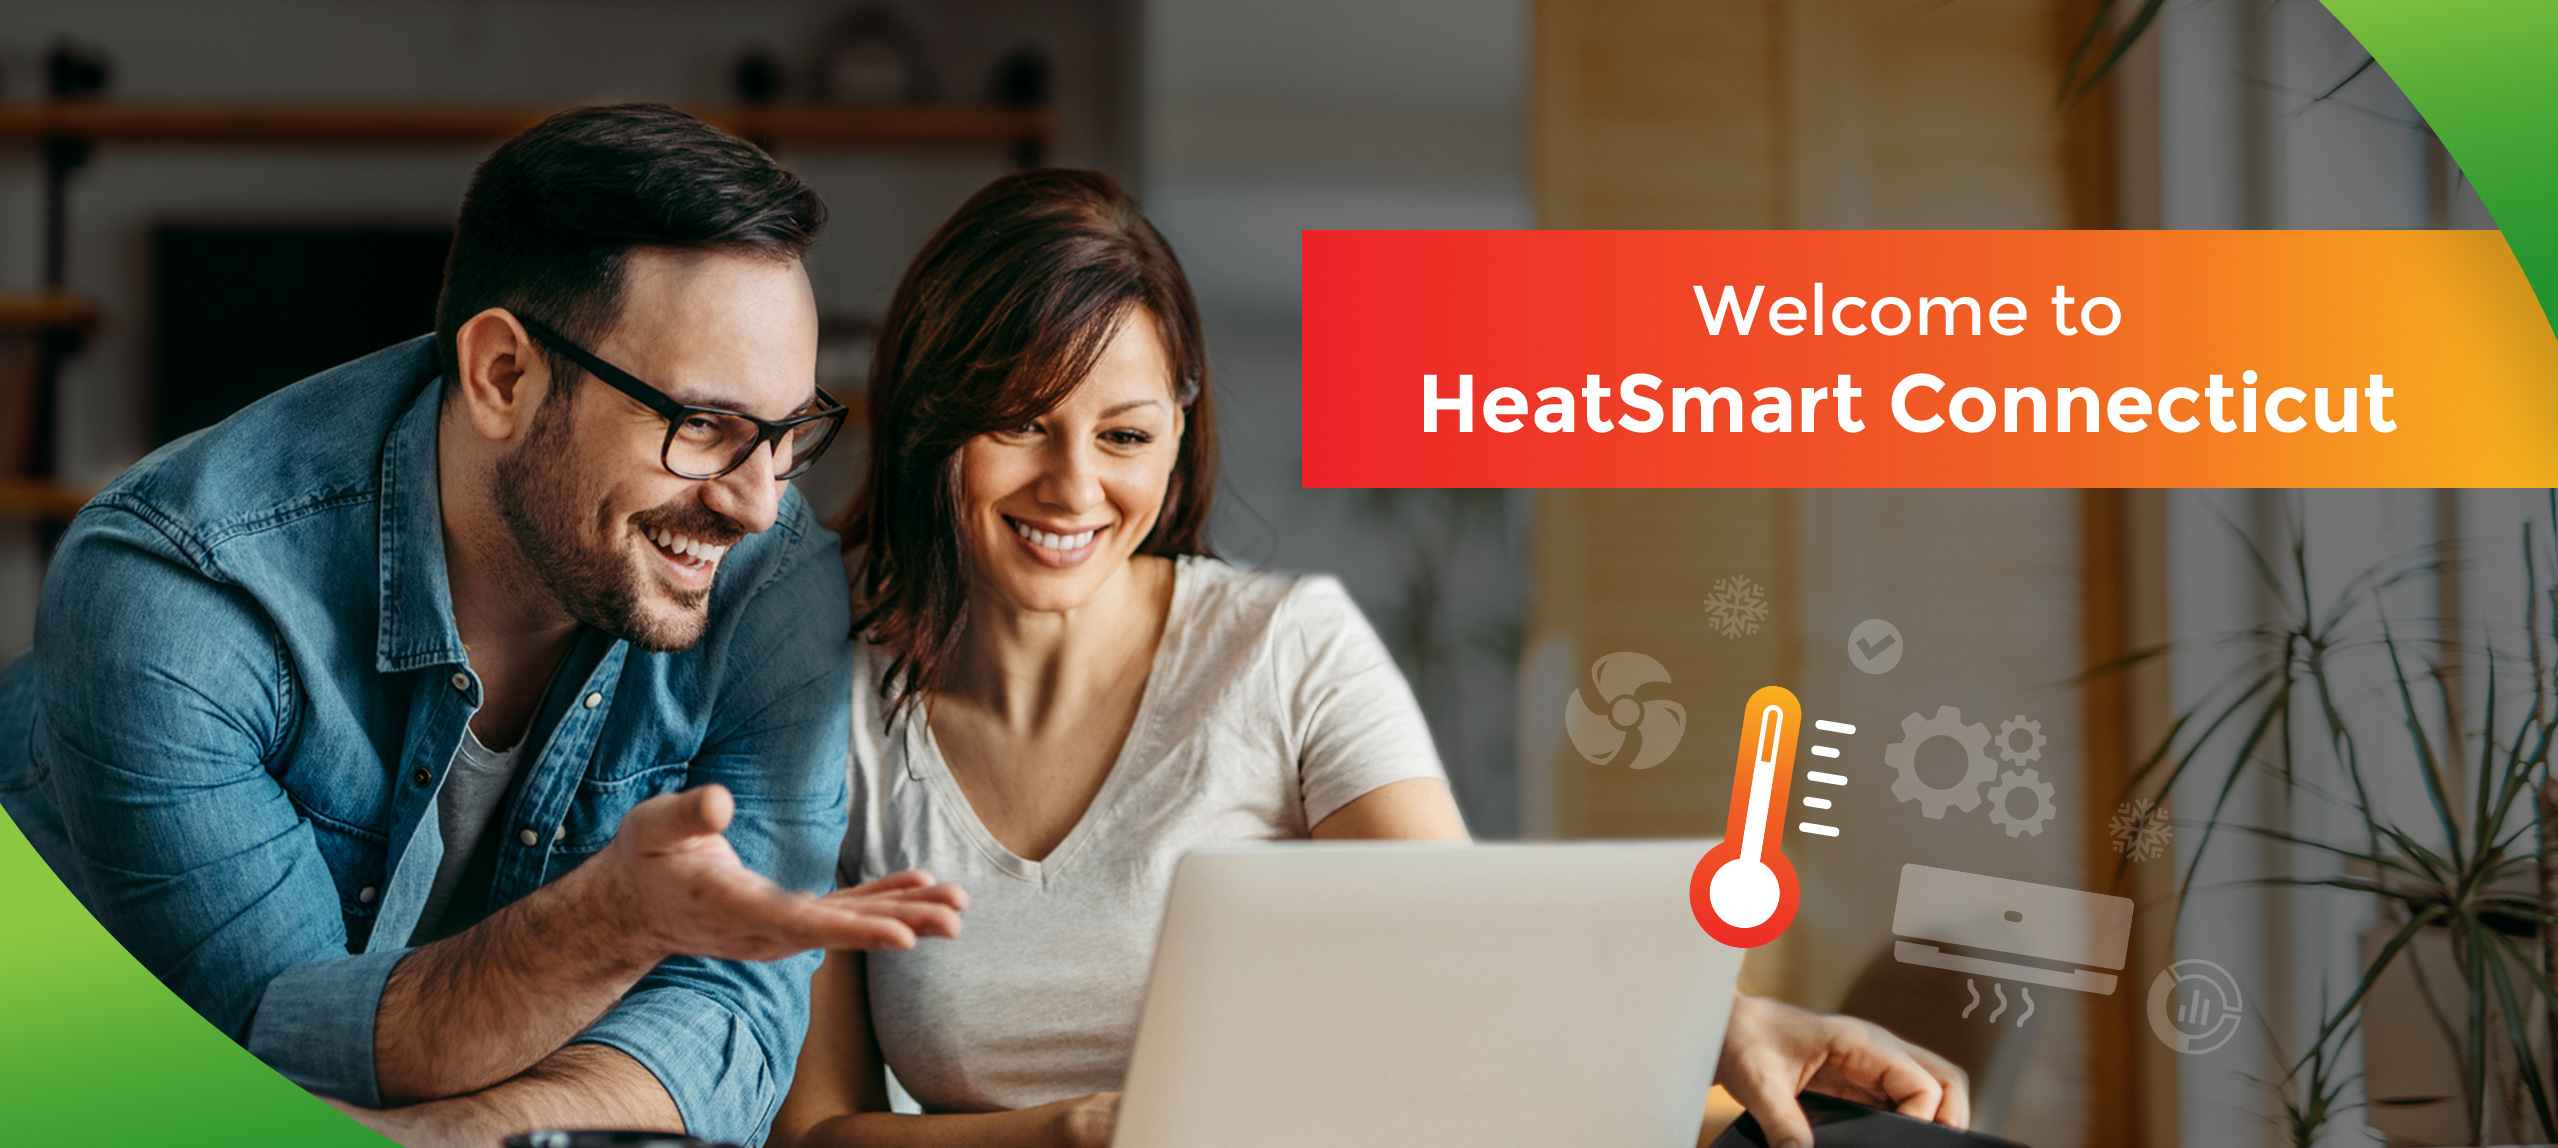 Welcome to HeatSmart Connecticut with a couple smiling while looking at a computer